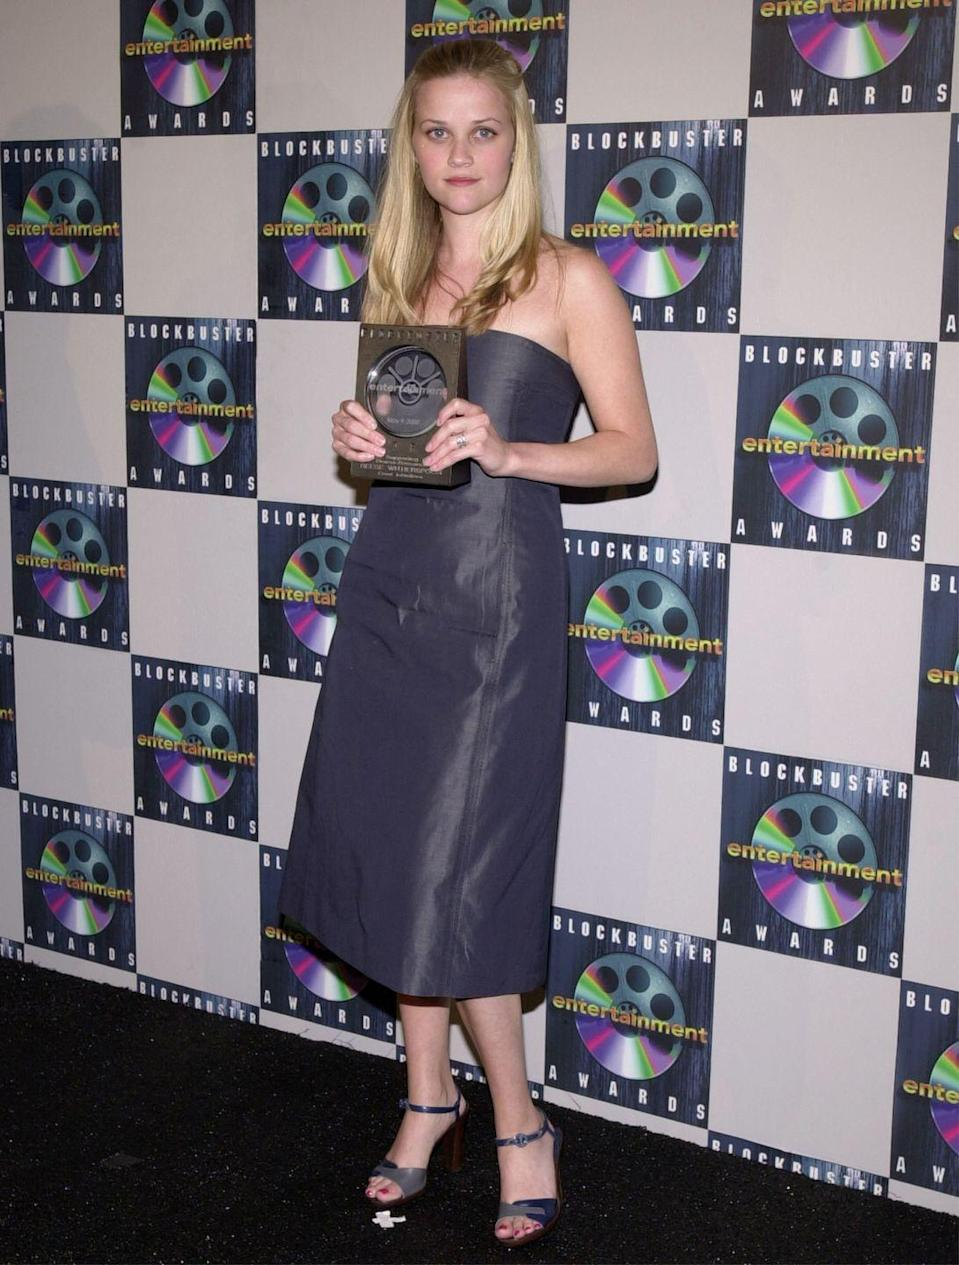 <p>Forget the Oscars and Golden Globes, The Blockbuster Entertainment Awards honored the most popular movies and stars that the stuffier award shows often overlooked. The televised show ran from 1995-2001, and award recipients included Tom Cruise, Reese Witherspoon, and Jim Carrey. </p><p>Source: <em>The Last Blockbuster </em>(2020)</p>